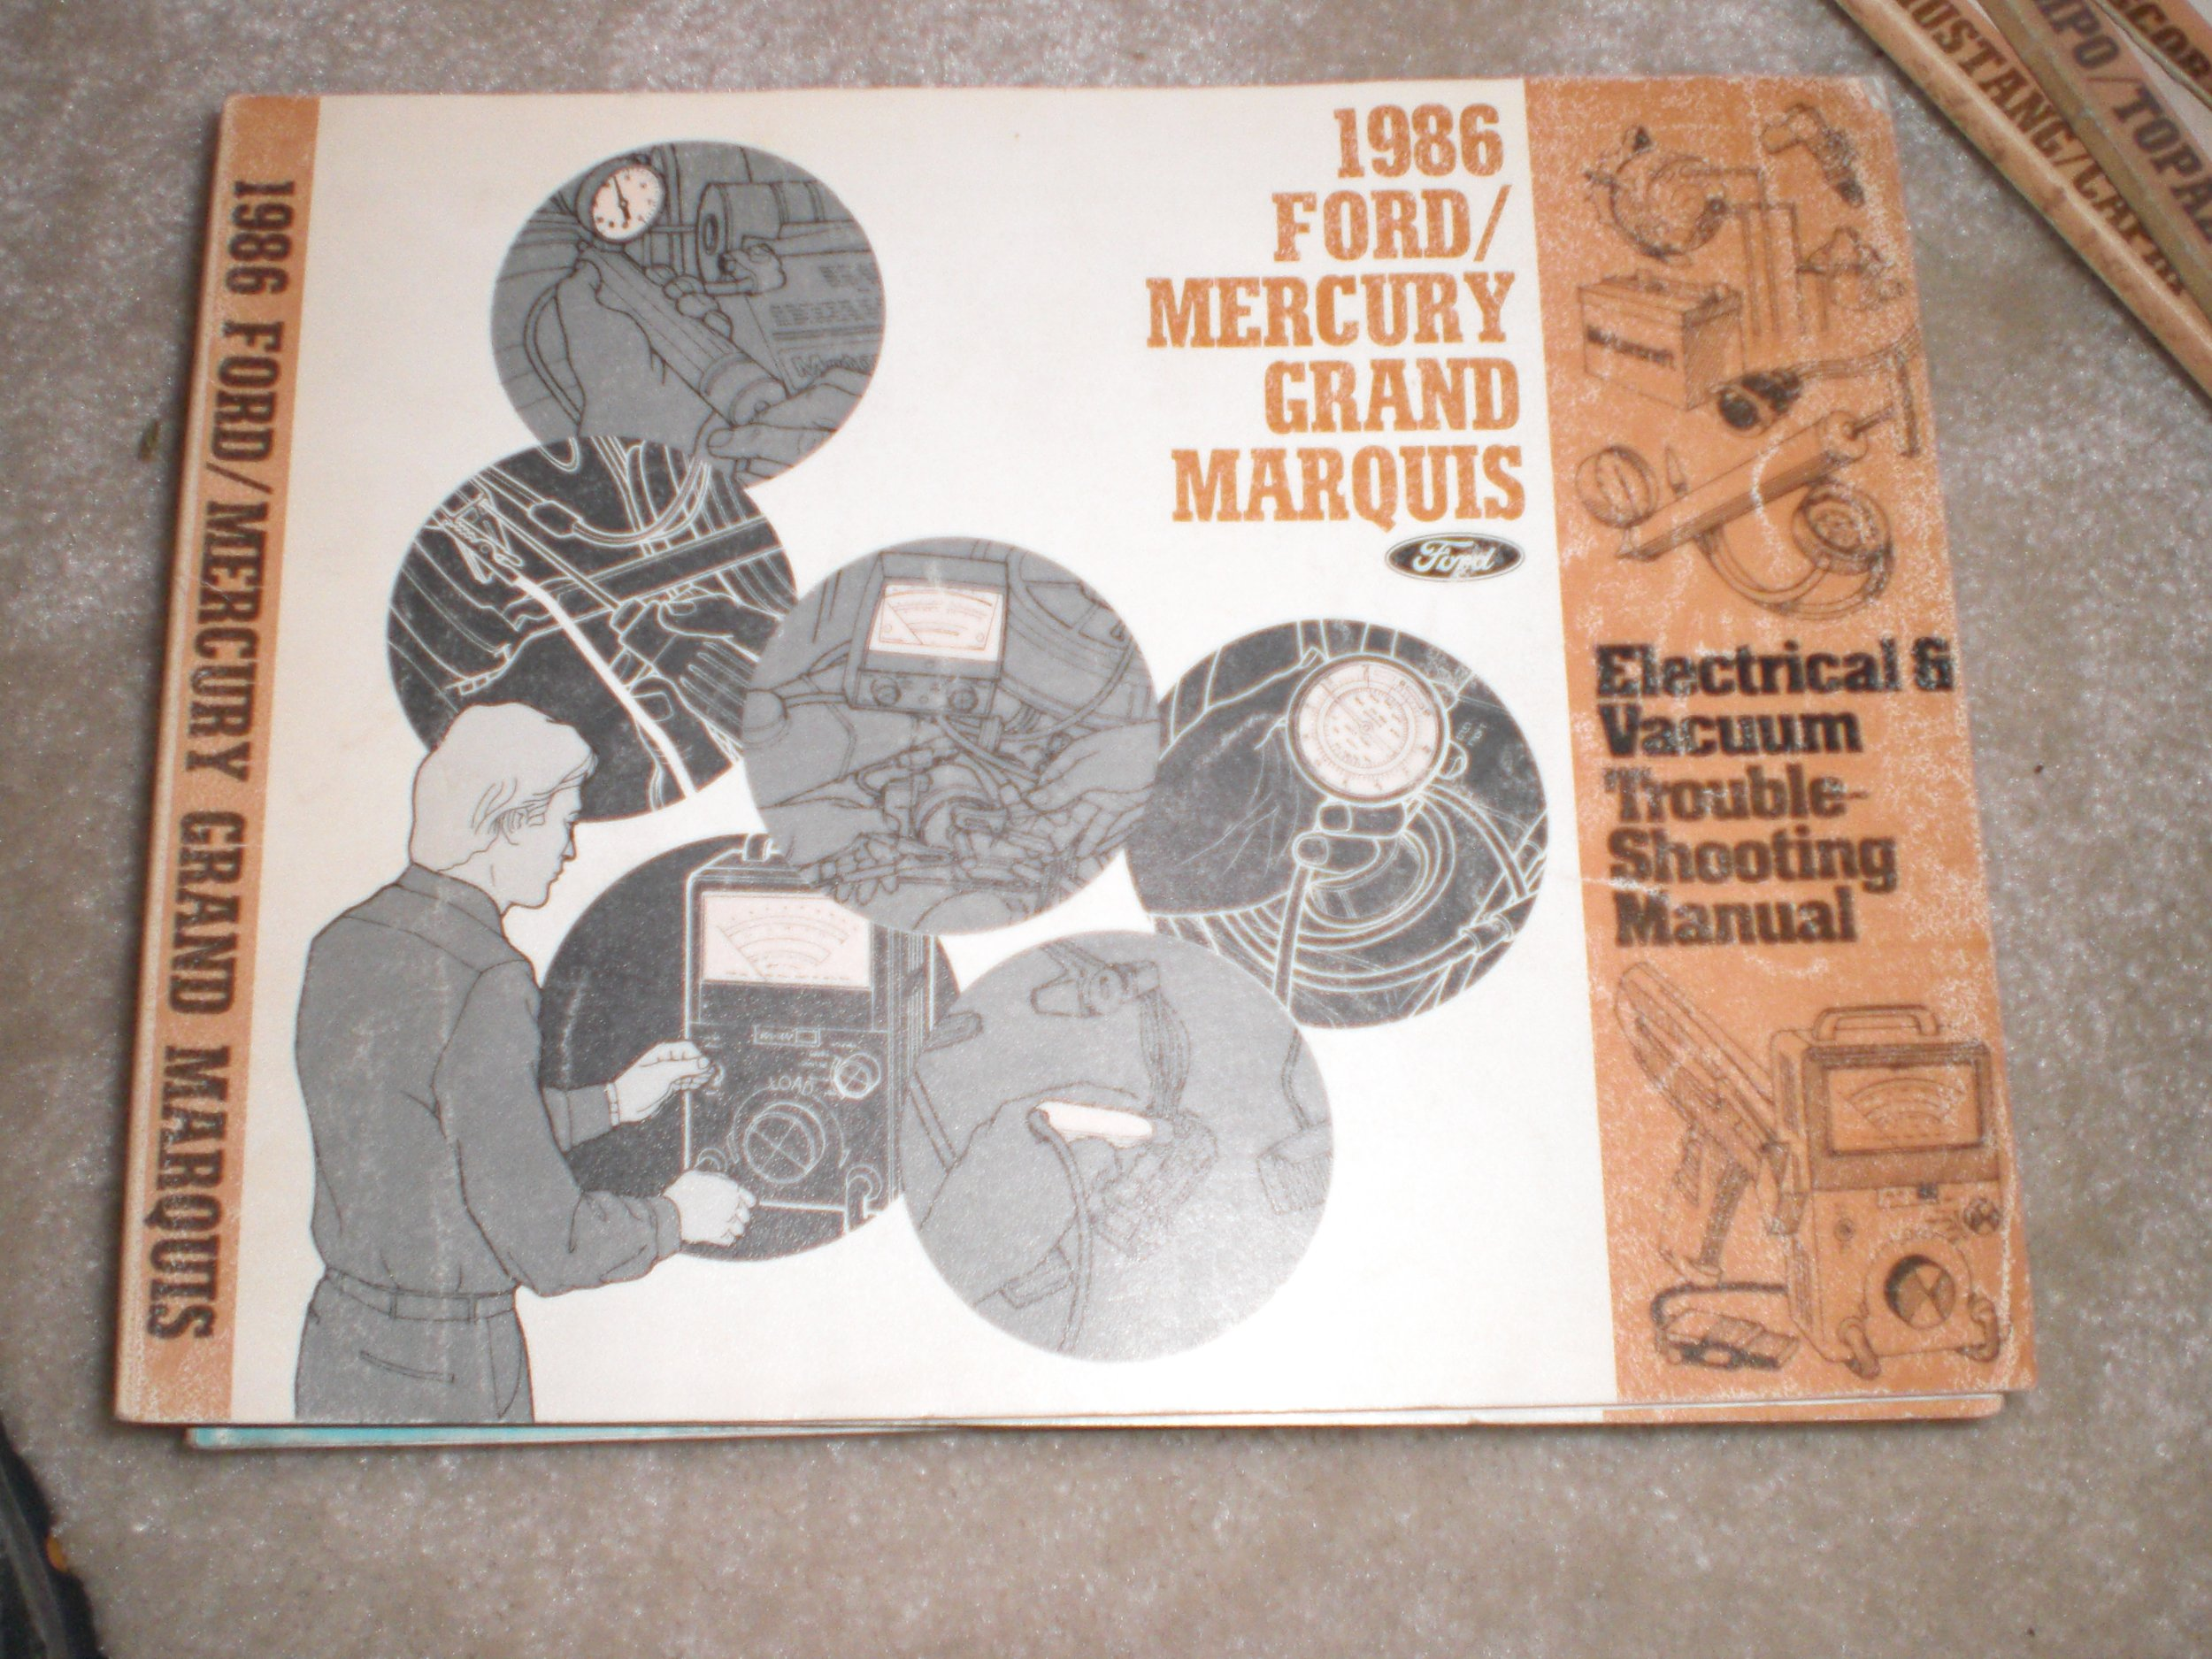 1986 Electrical Vacuum Troubleshooting Manual Ford Mercury Grand 1985 Marquis Wiring Diagram Motor Co Books